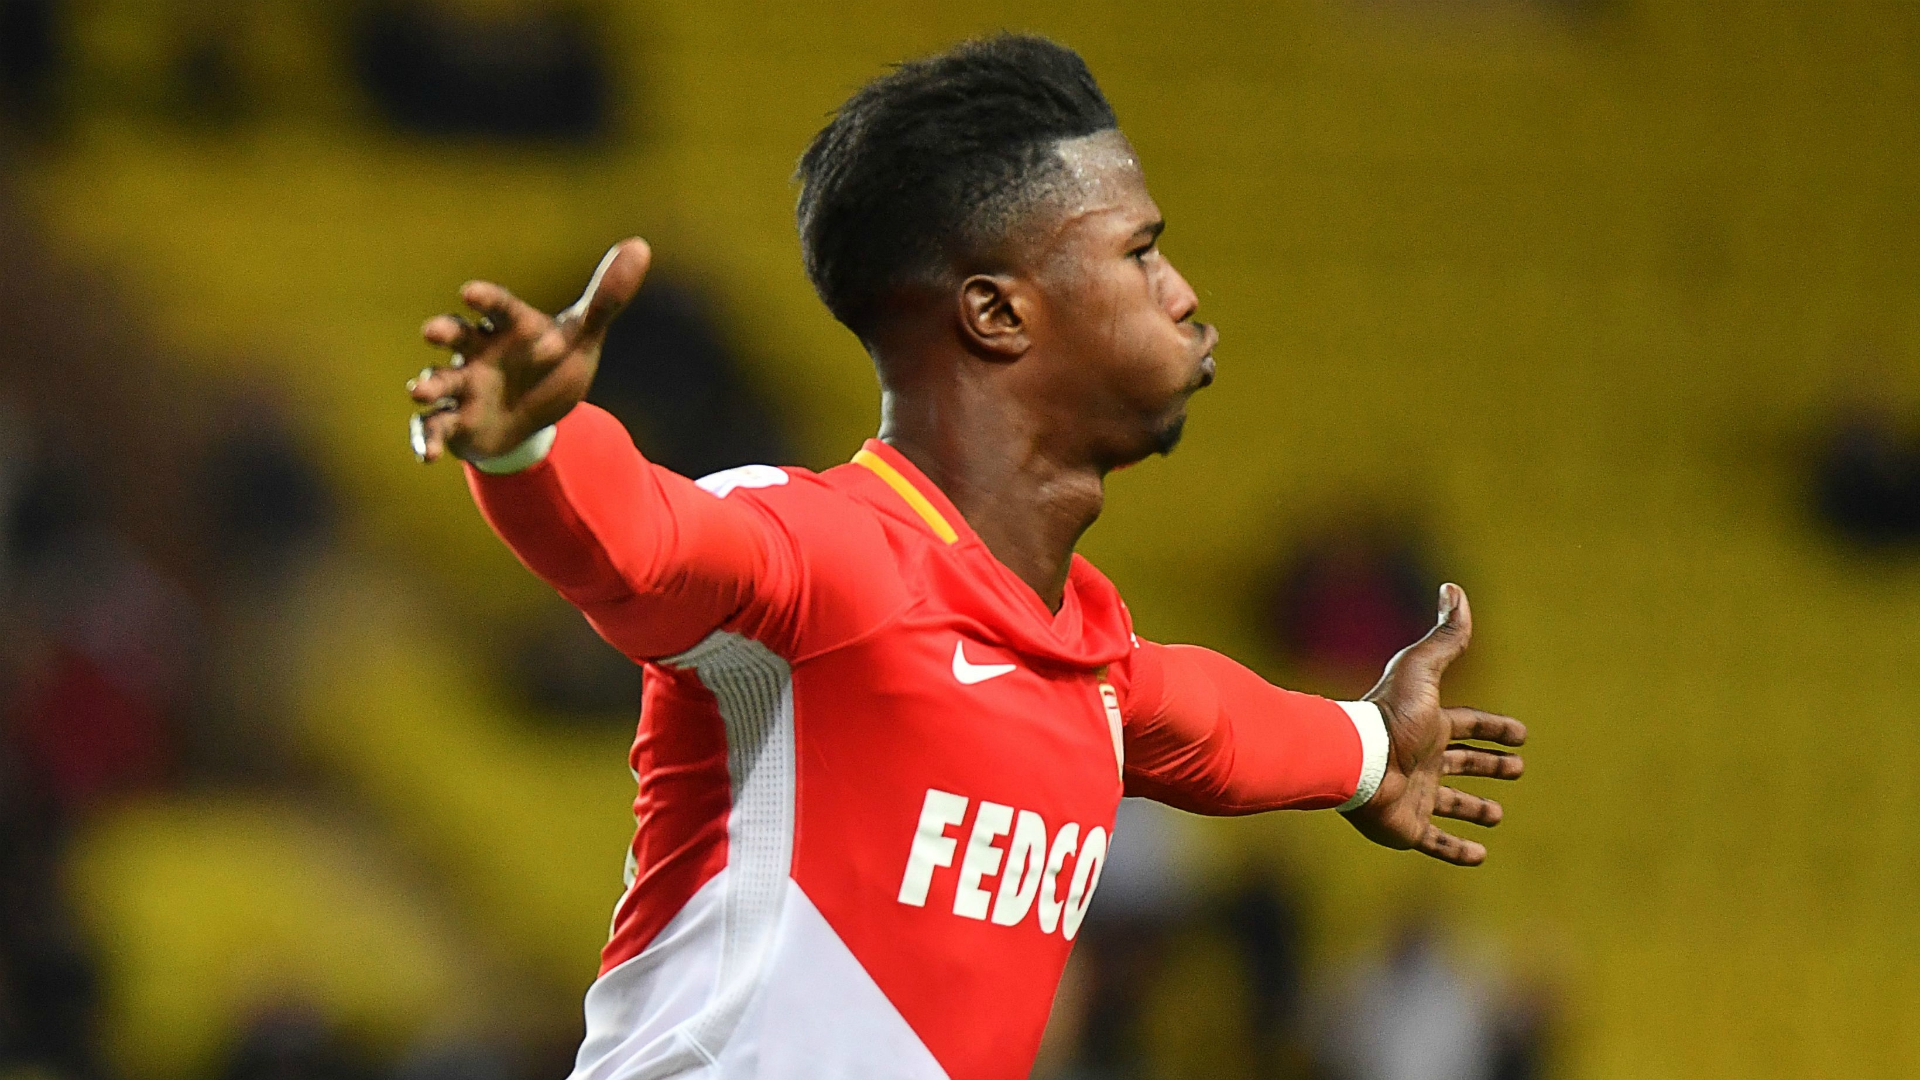 Keita Balde transfer news: Inter to complete €6m loan move for Monaco ace